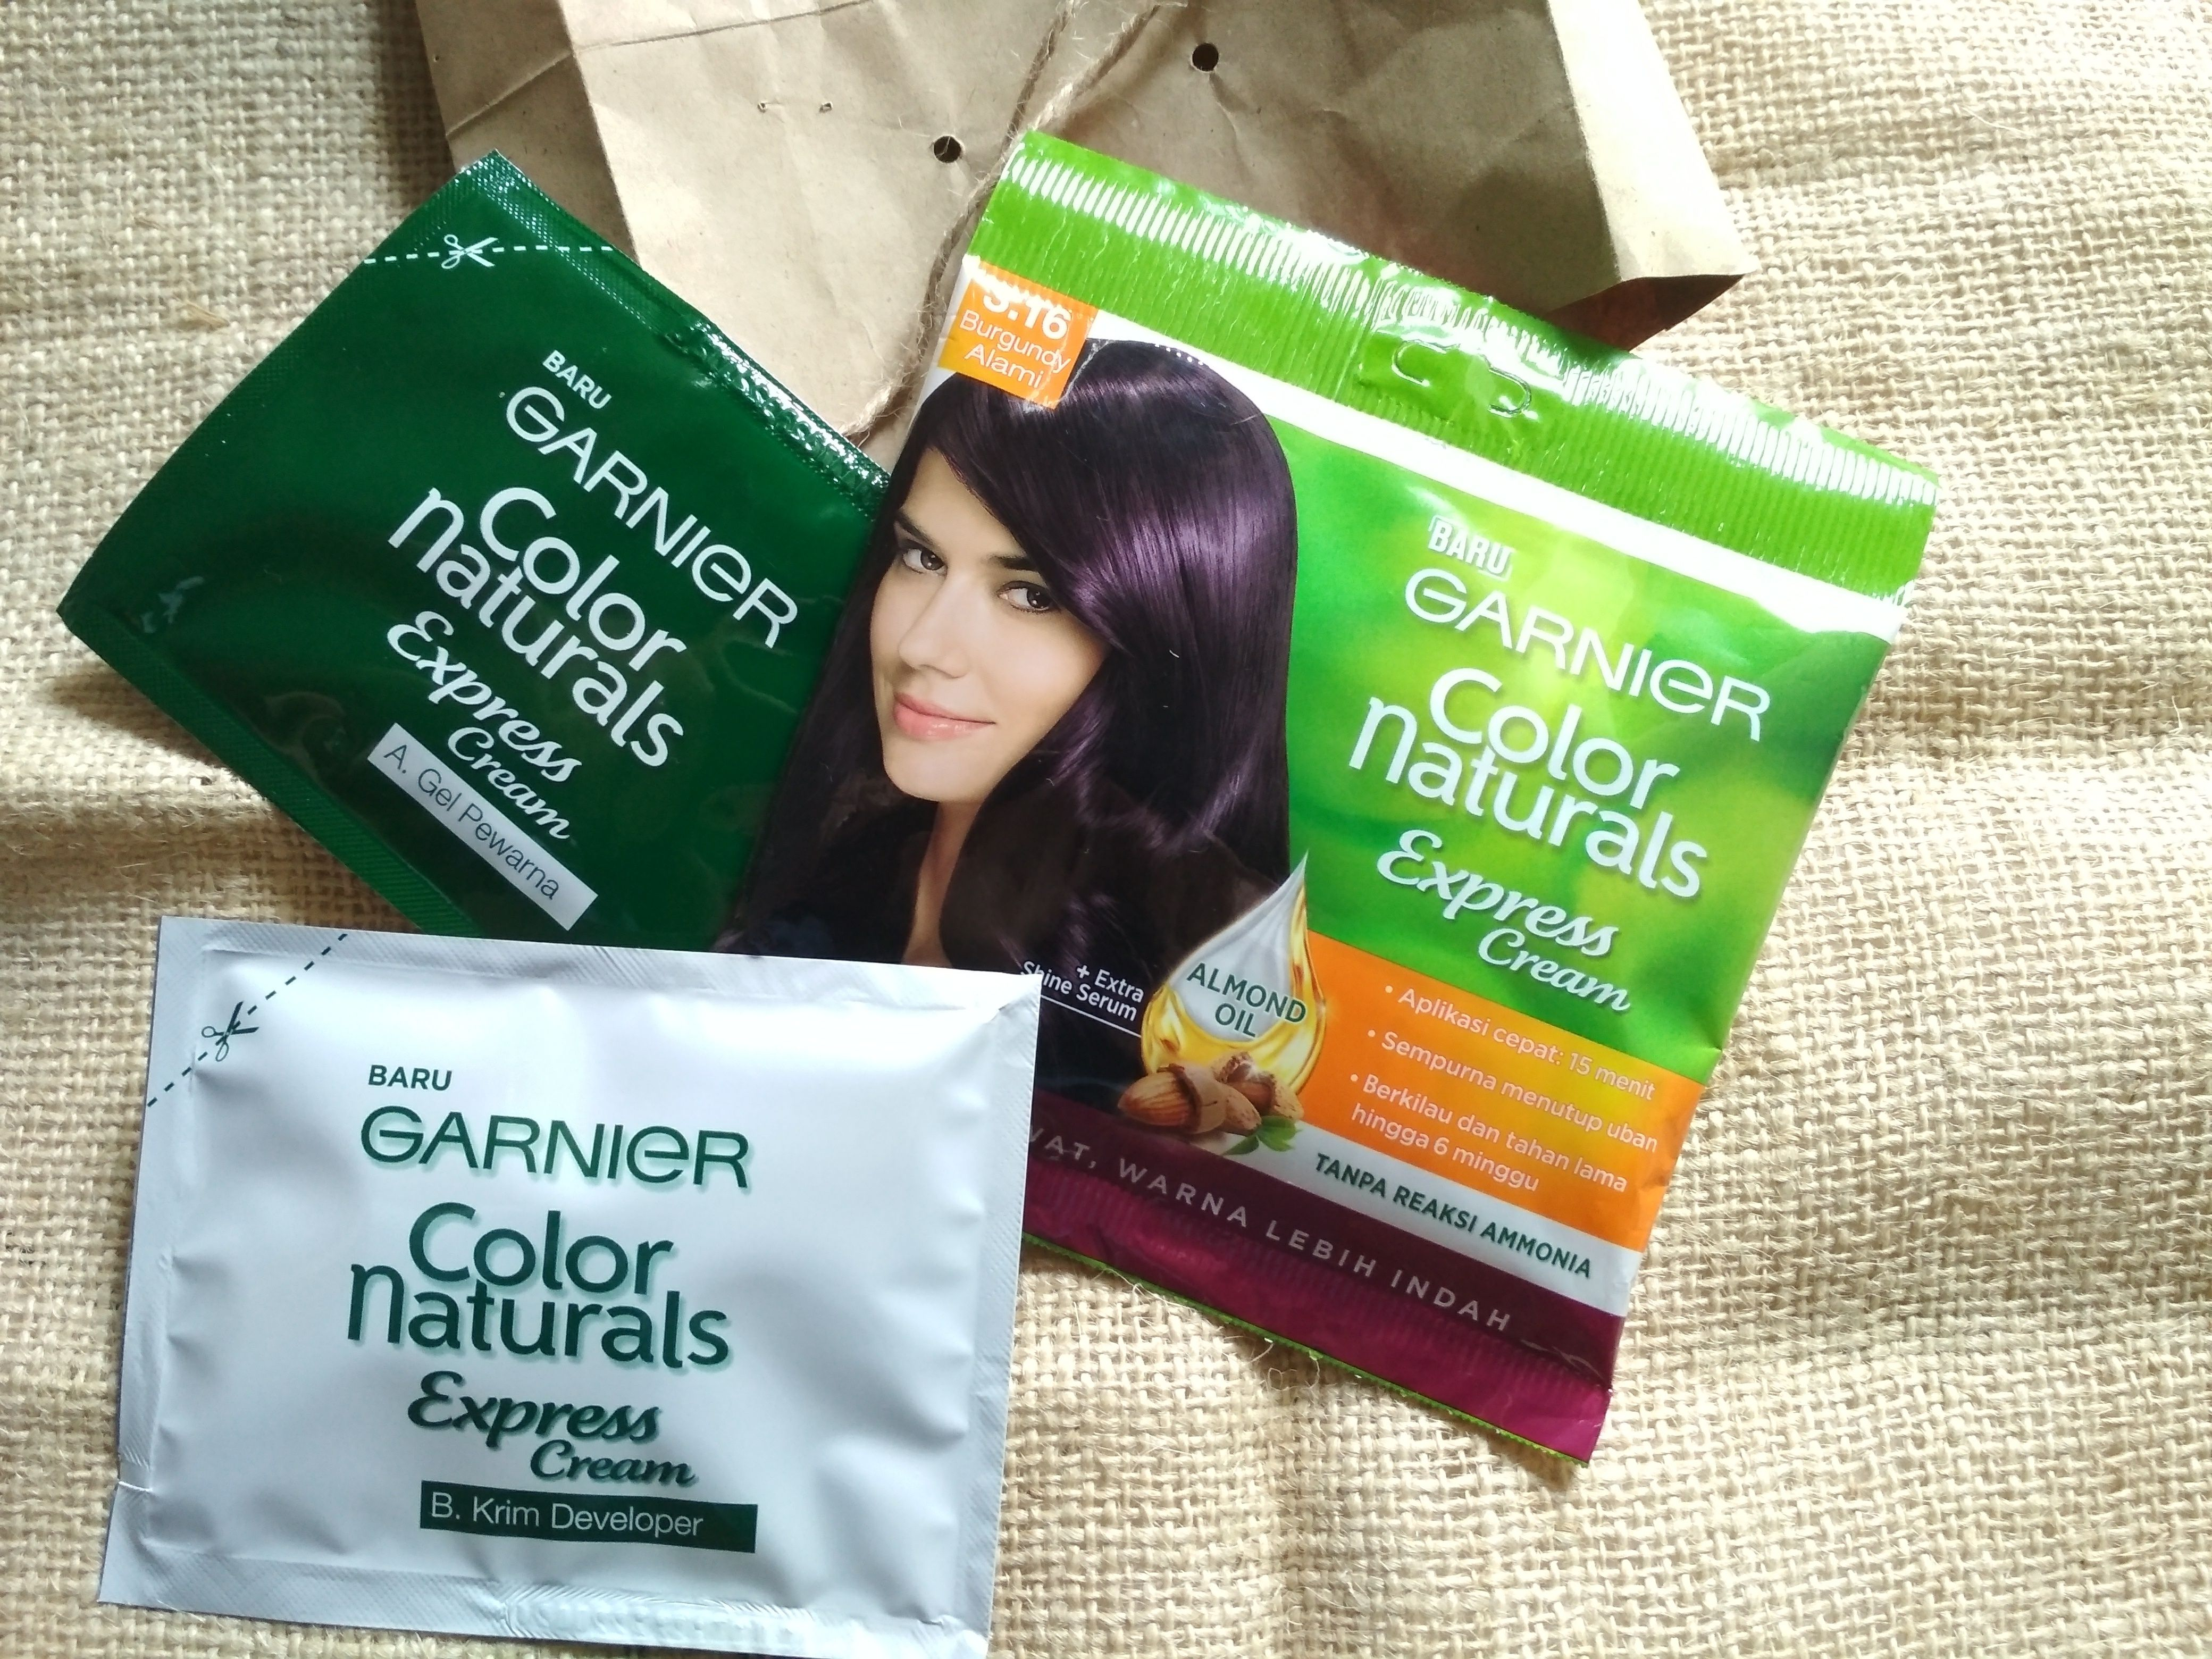 gambar review ke-1 untuk Garnier Color Naturals Express Cream